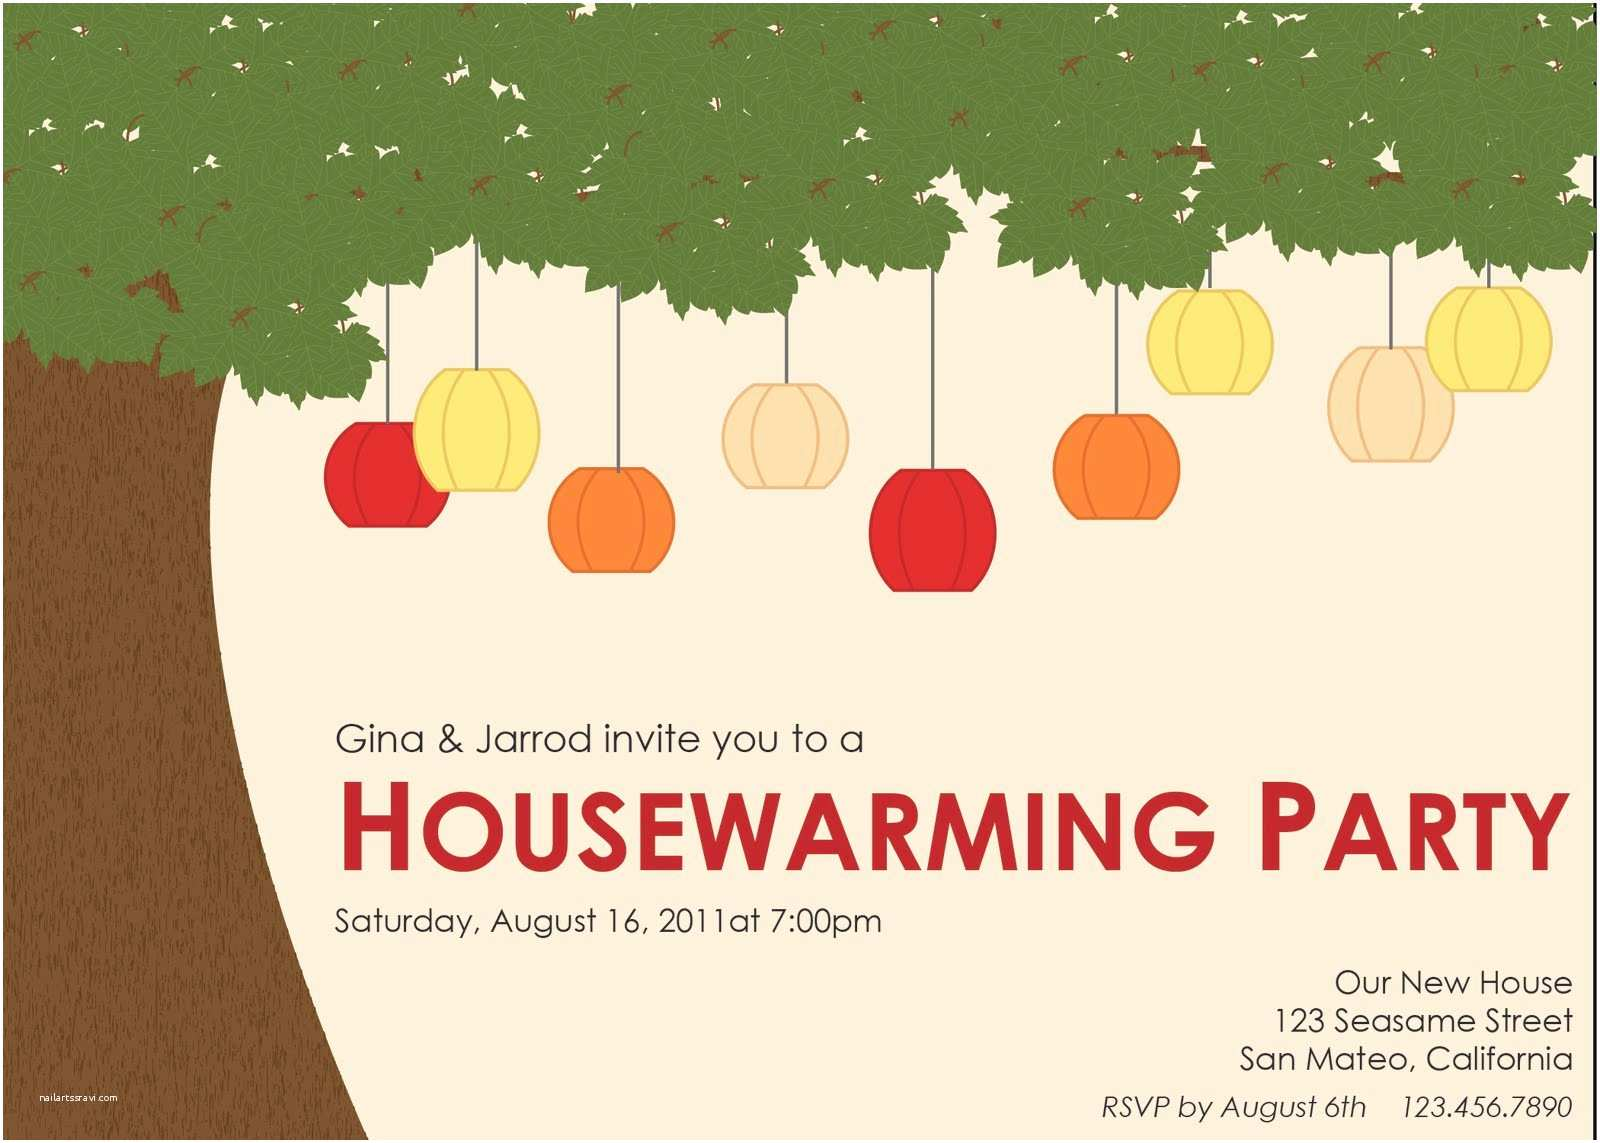 Housewarming Party Invitation House Warming Party Invitations